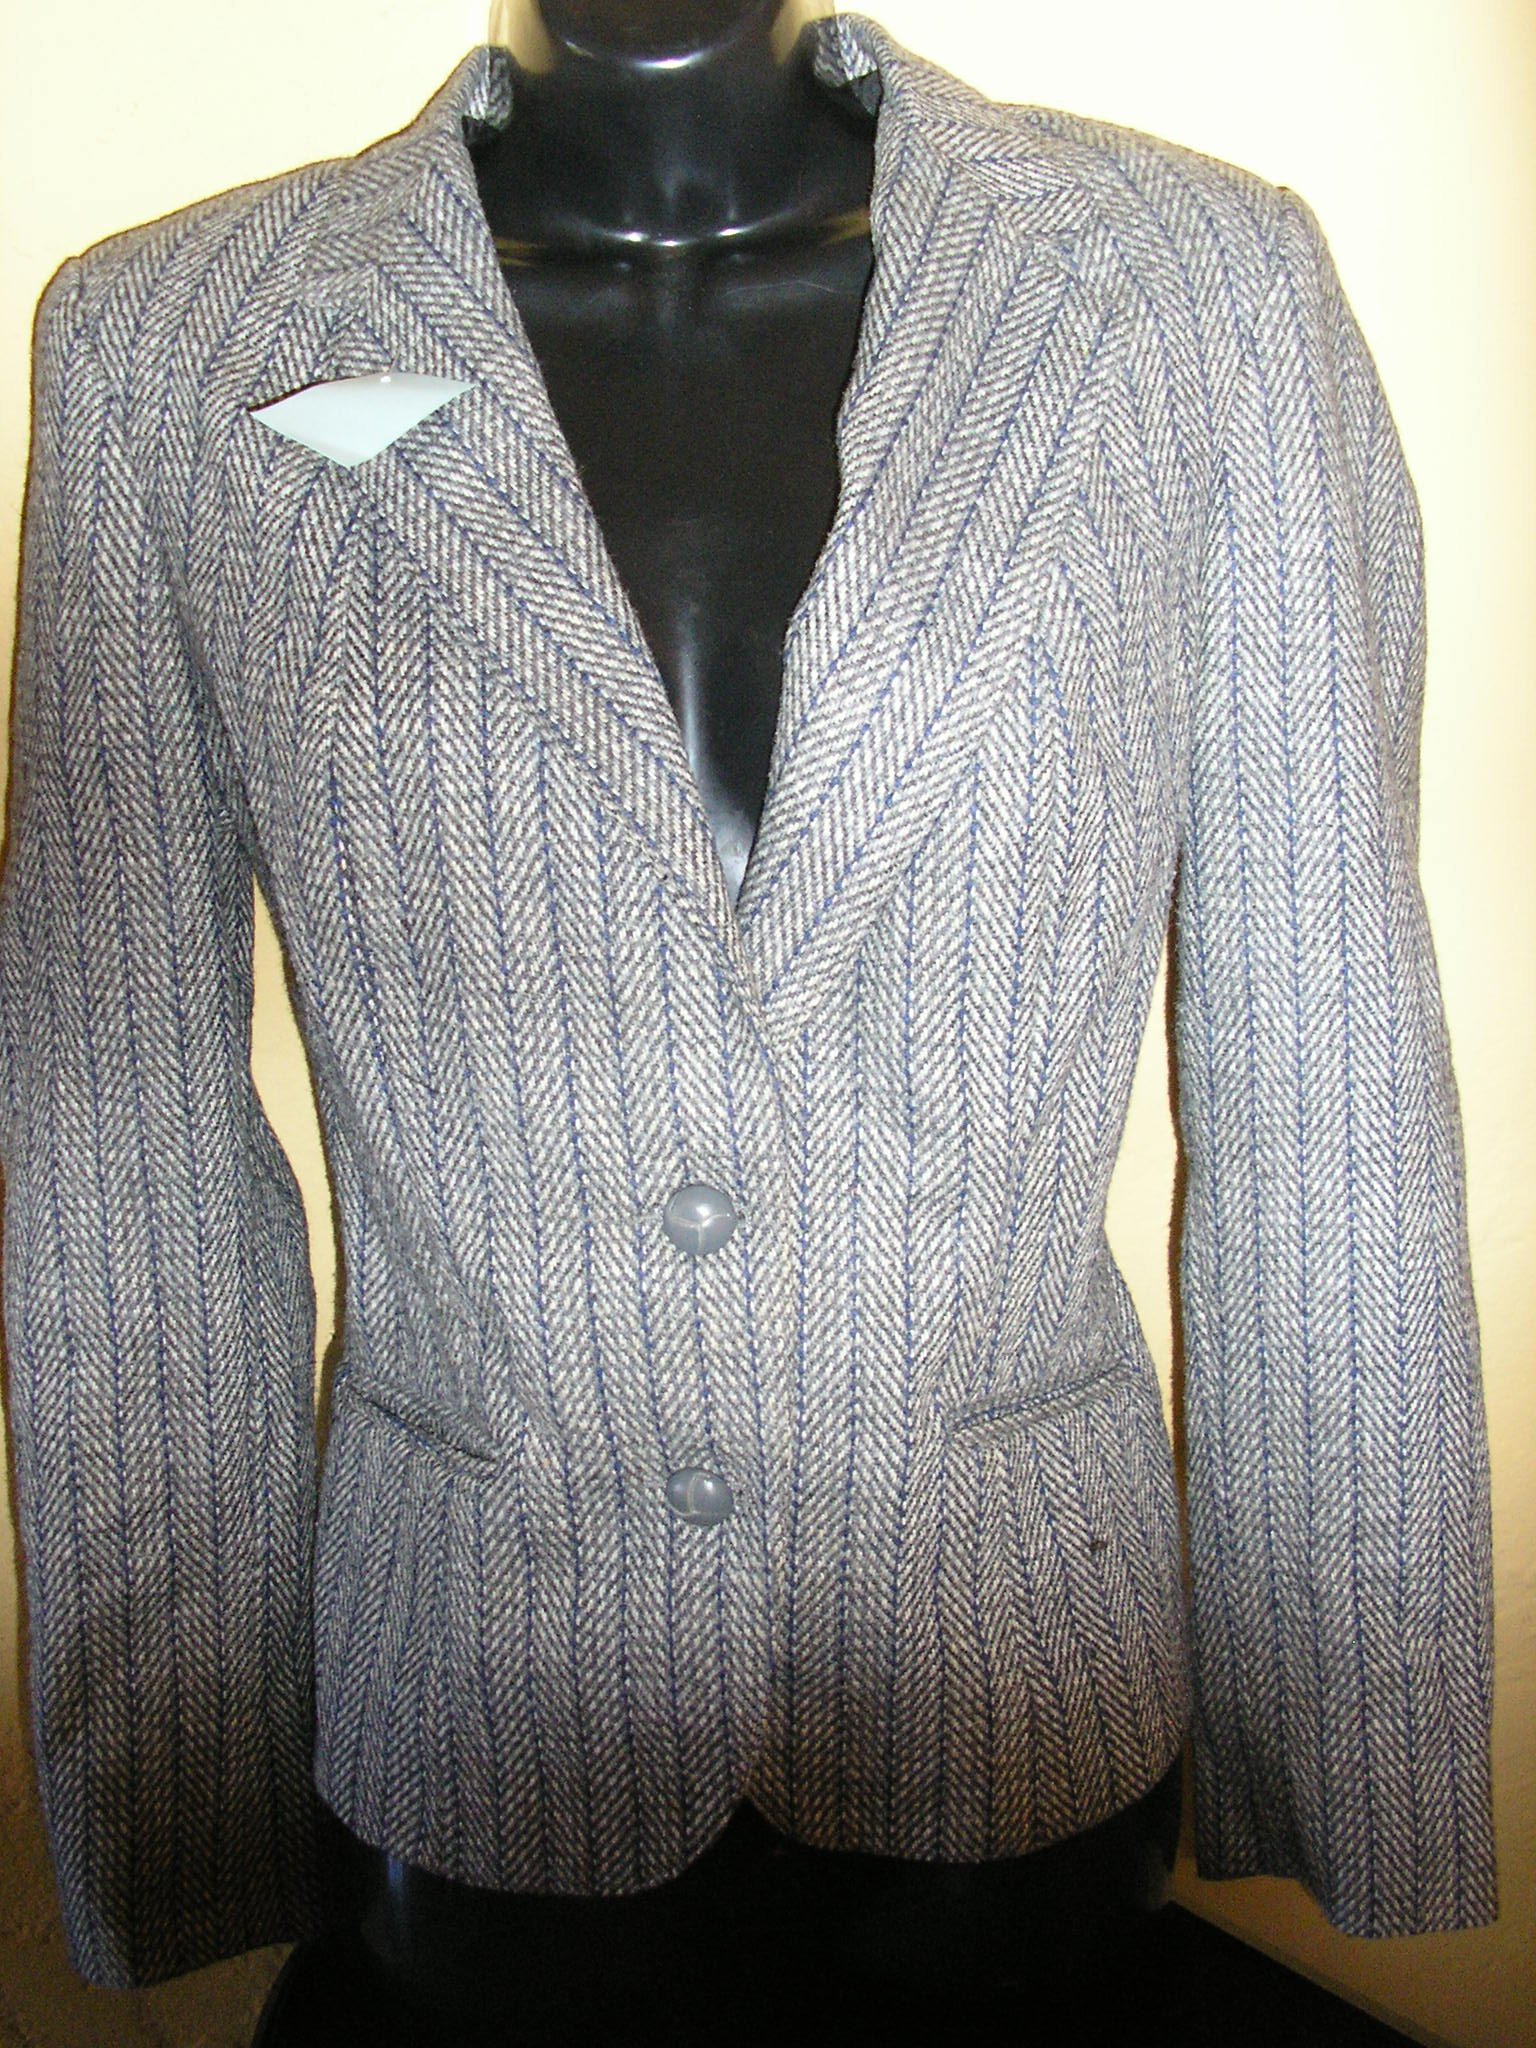 1970s grey wool herringbone navy pinstripe suit sz